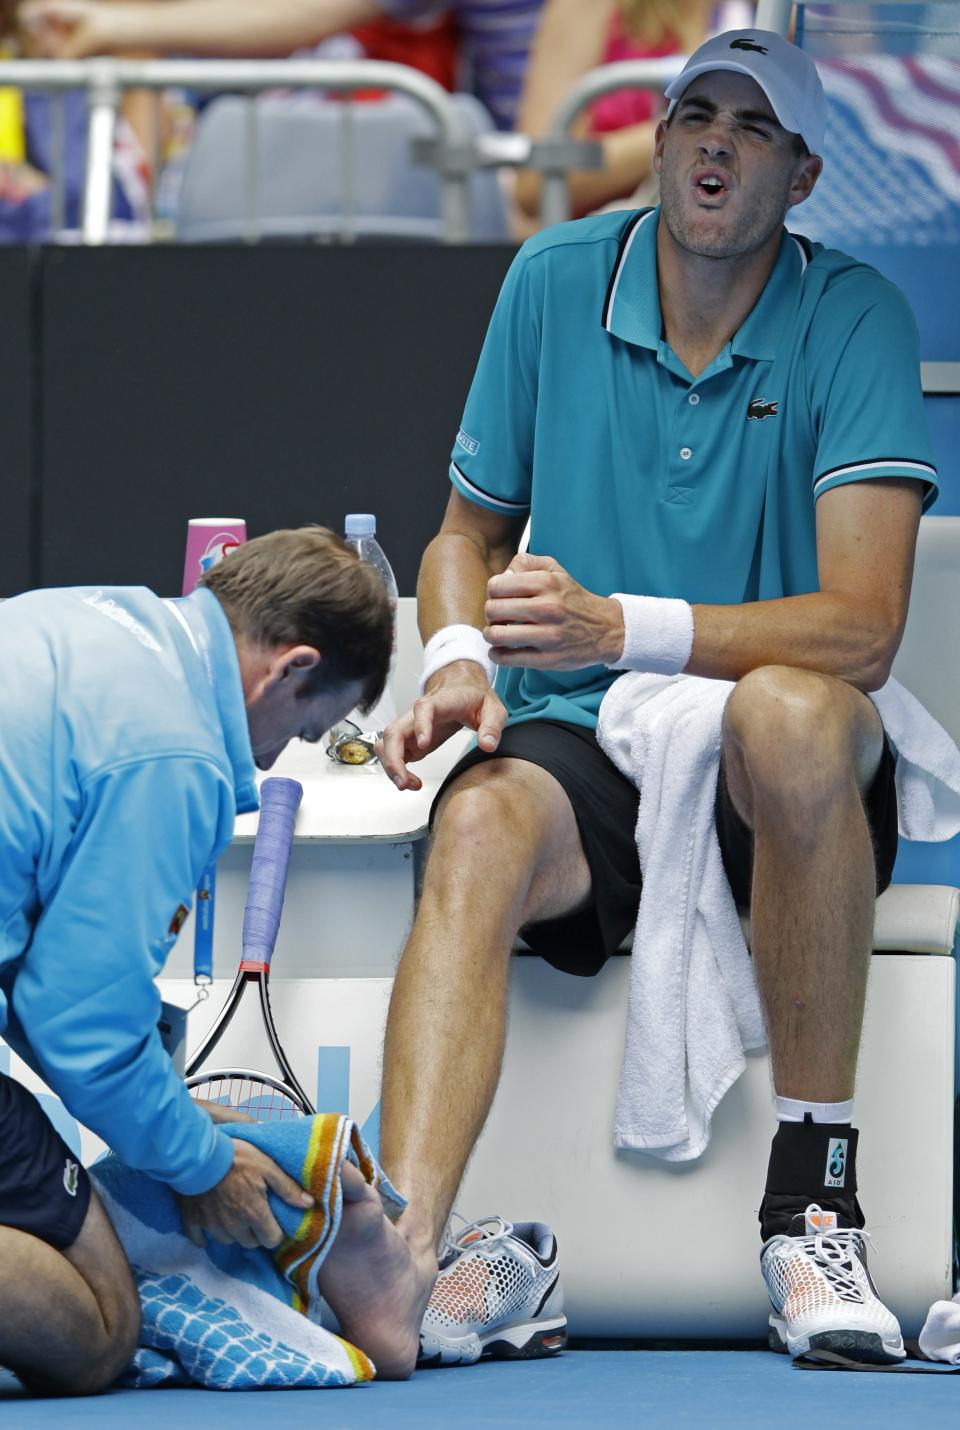 John Isner of the US reacts as a trainer looks at his injured foot during his third round match against Spain's Feliciano Lopez at the Australian Open tennis championship, in Melbourne, Australia, Friday, Jan. 20, 2012. (AP Photo/Rick Rycroft)